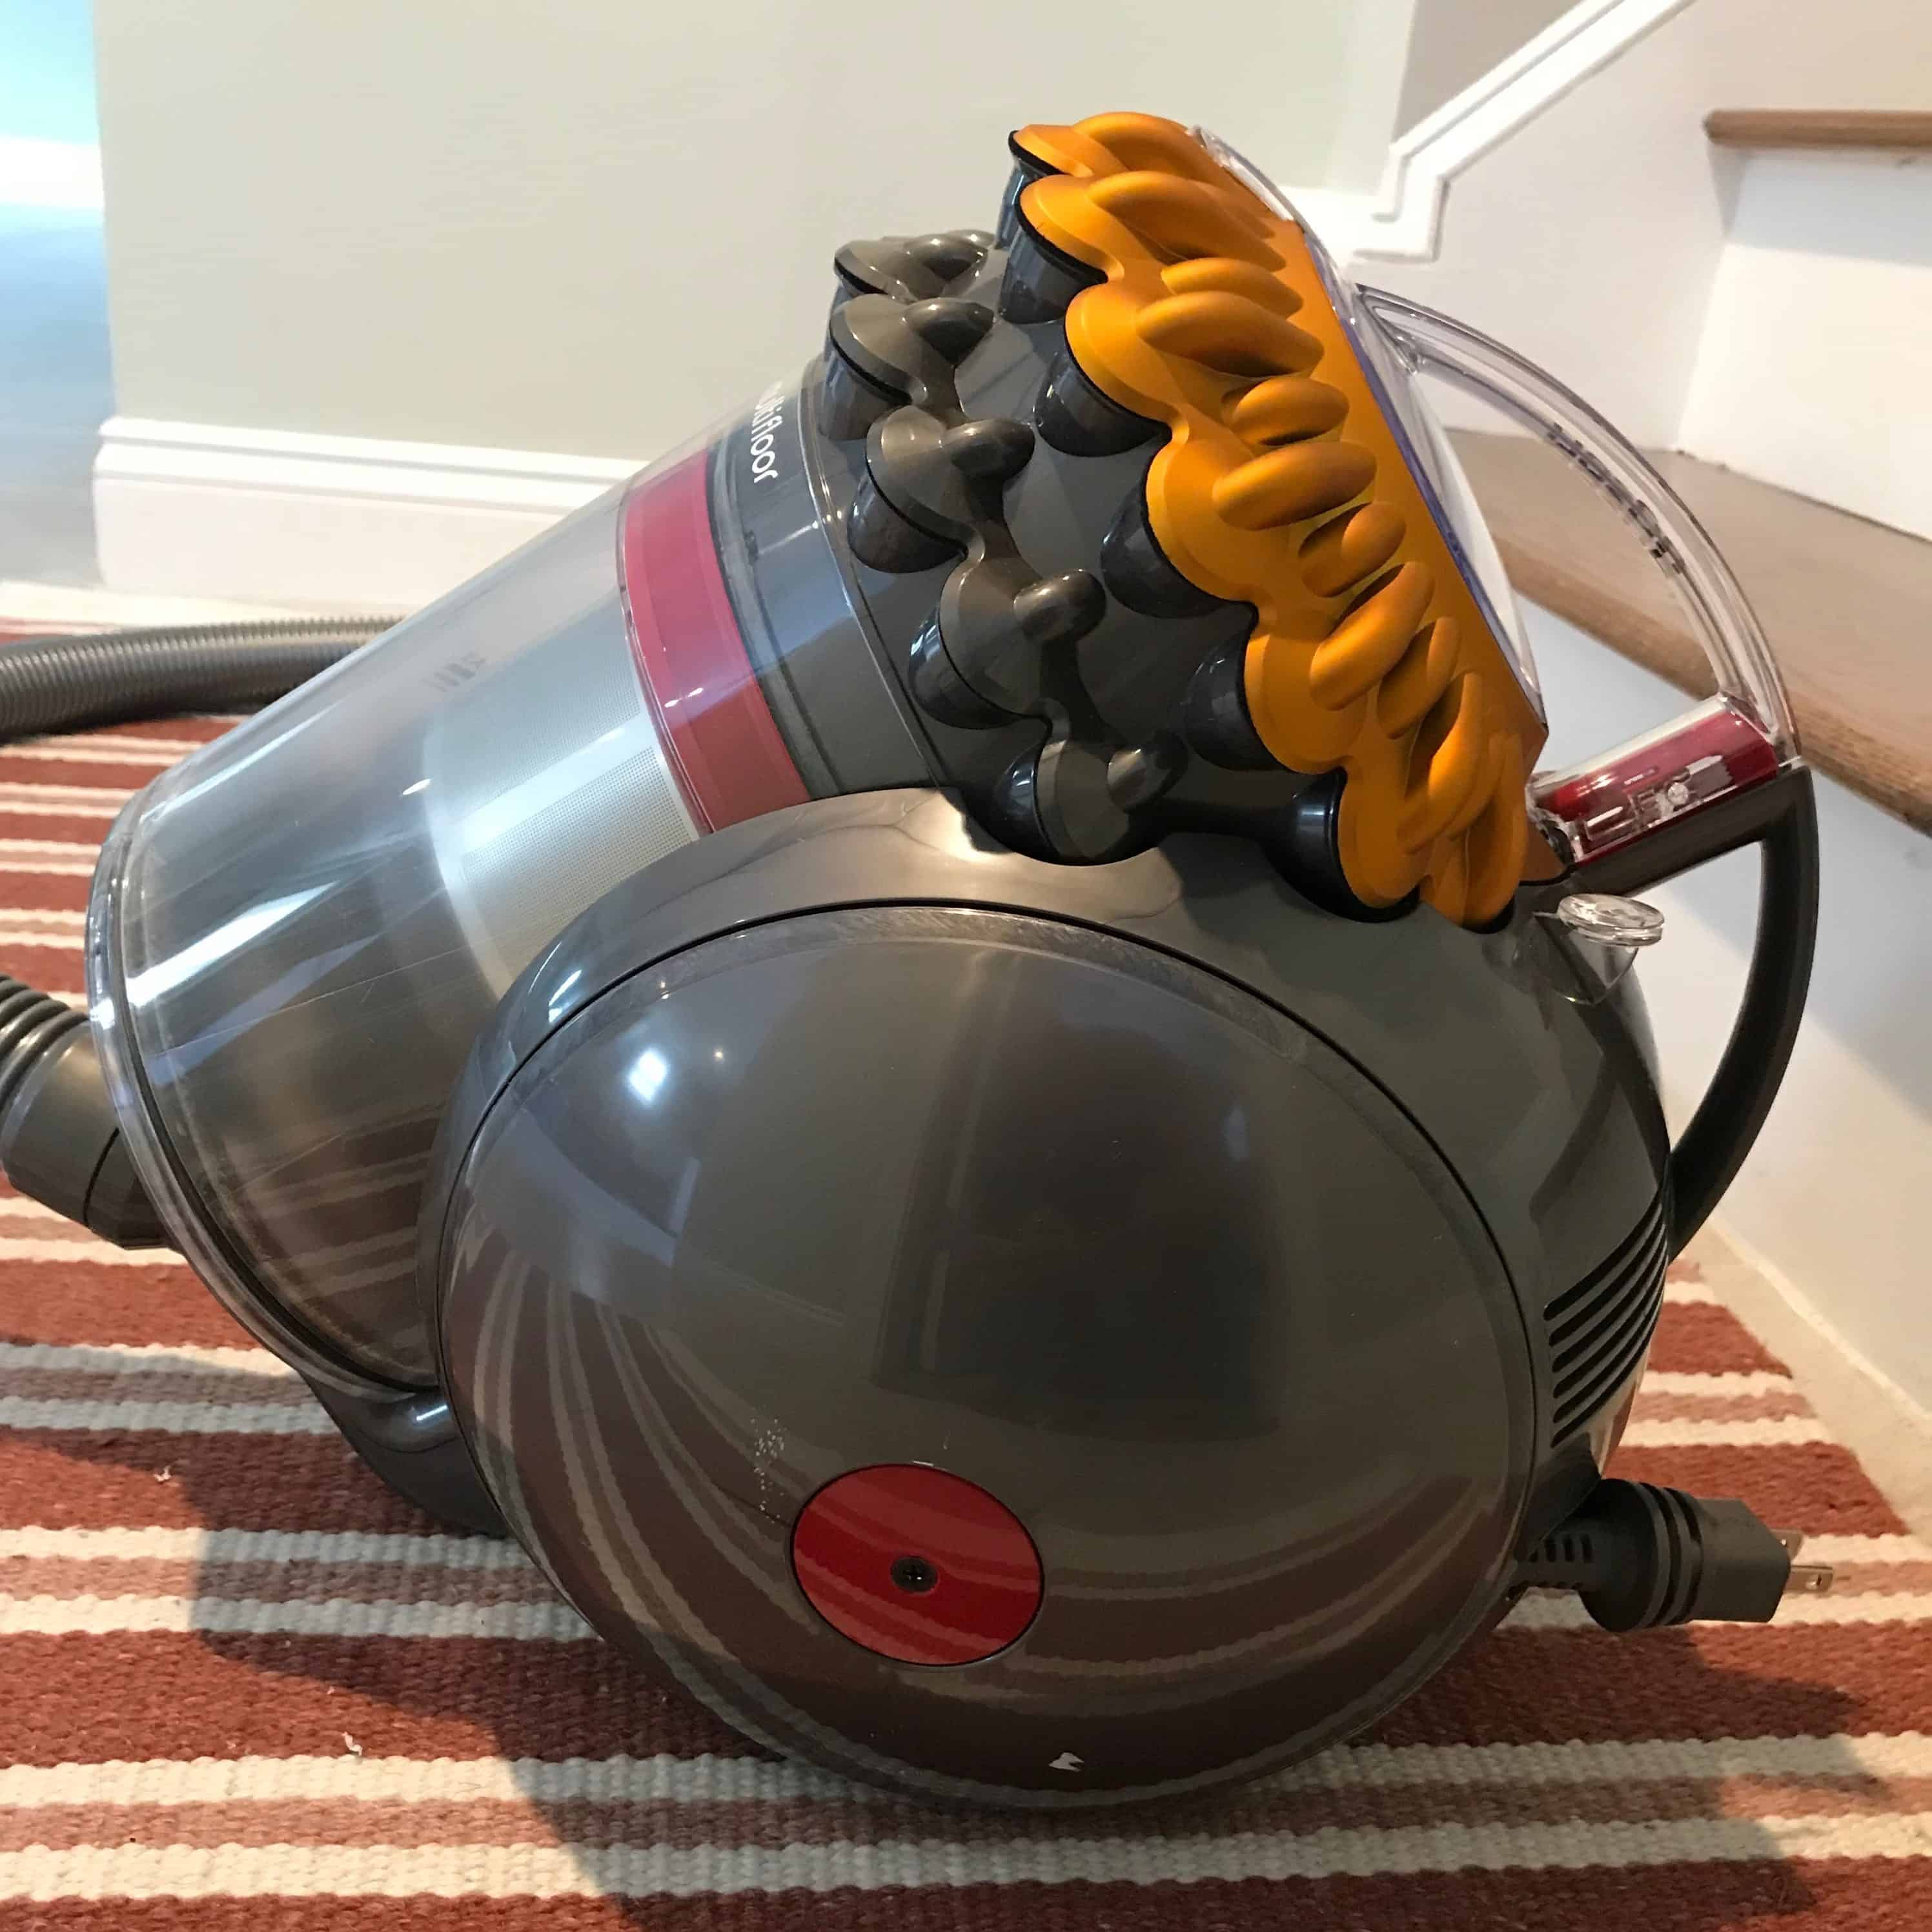 Top 4 Best Vacuums For Hardwood Floors And Area Rugs With